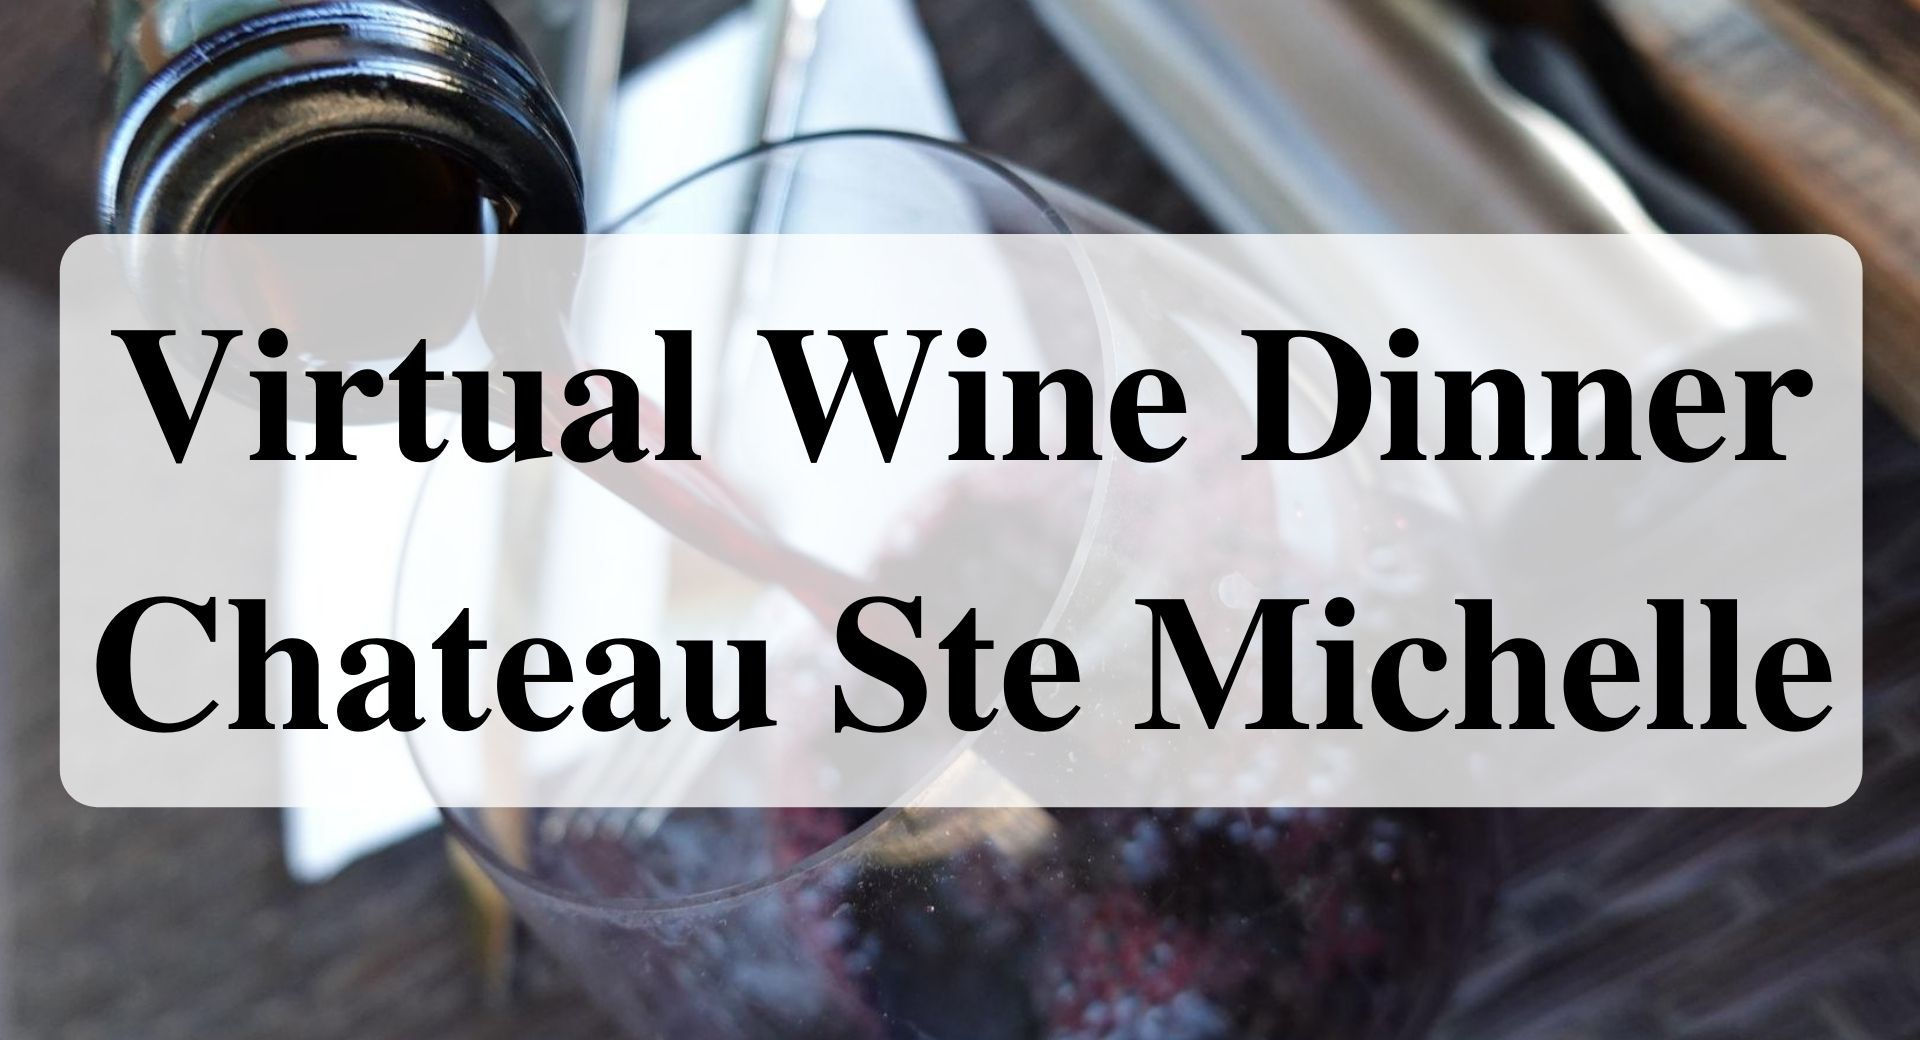 Virtual Wine Dinner Chateau Ste Michelle Forever Sabbatical